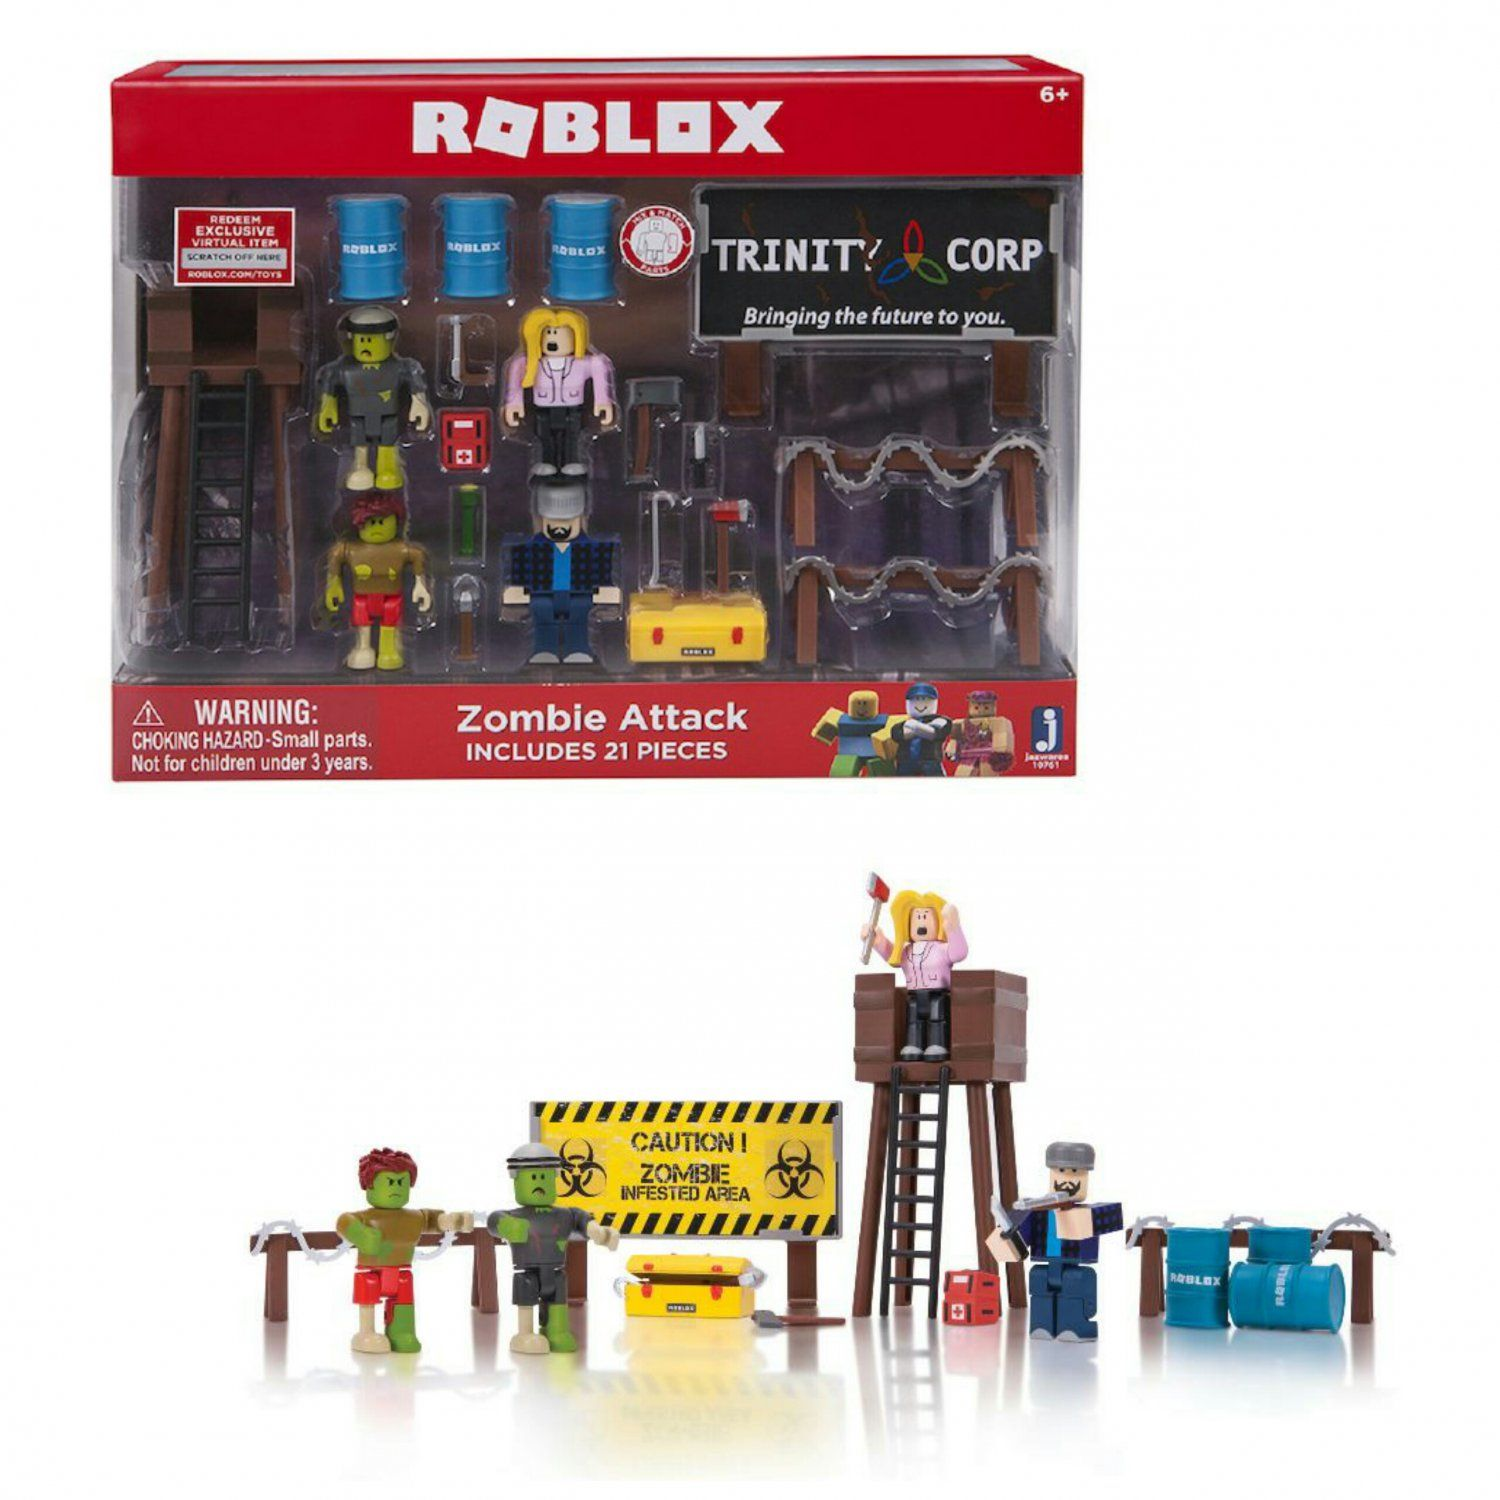 Roblox Action Figure Set Zombie Attack Playset By Jazwares